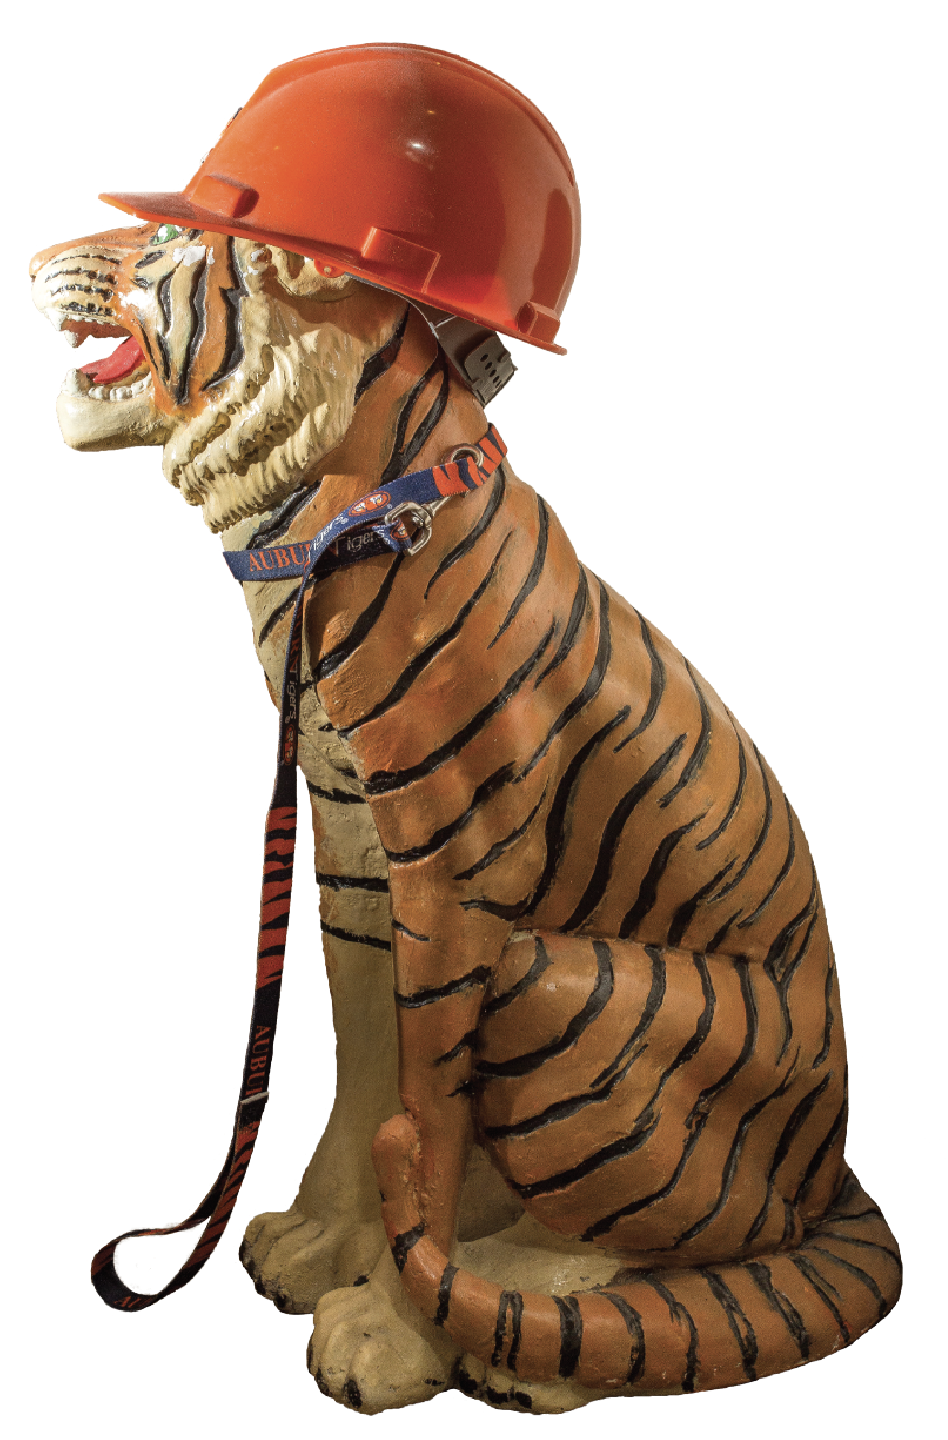 Tiger Statue wearing orange hard hat